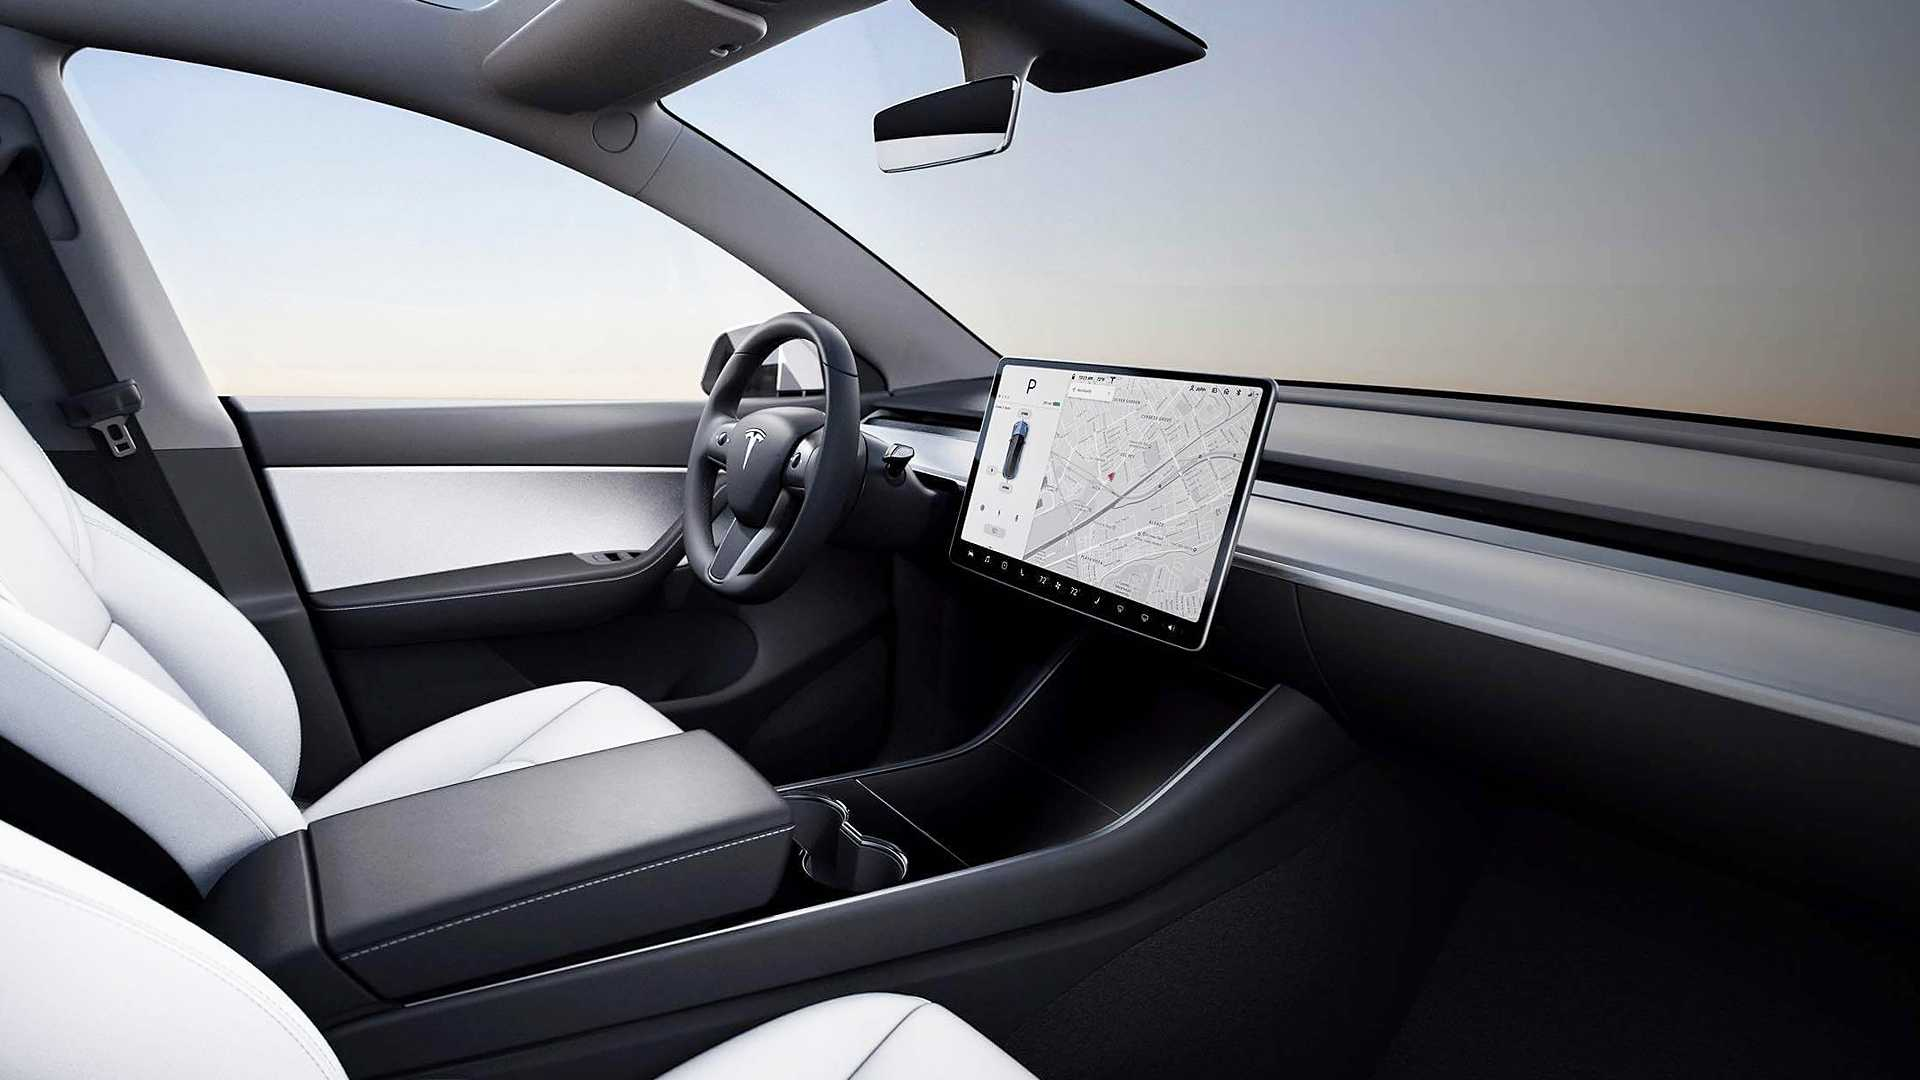 Tesla's In-Car Screen Gets Top Marks In Consumer Reports Survey